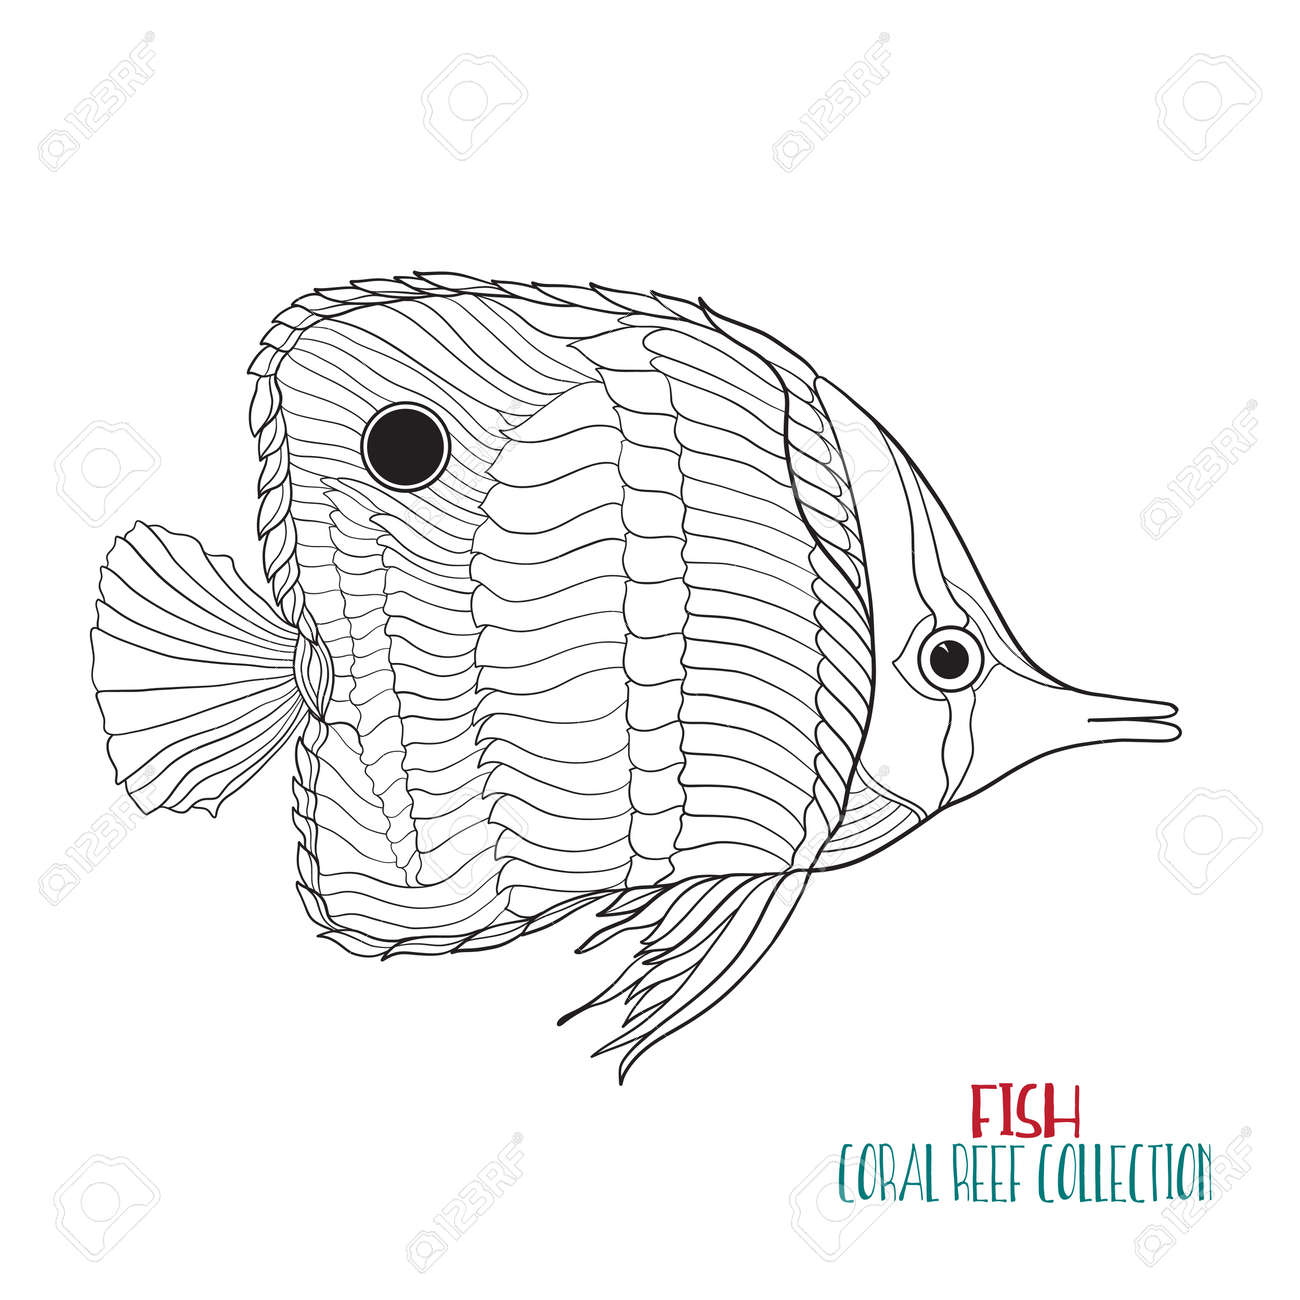 Coral Reef Collection Sea Or Aquarium Fish Outline Vector